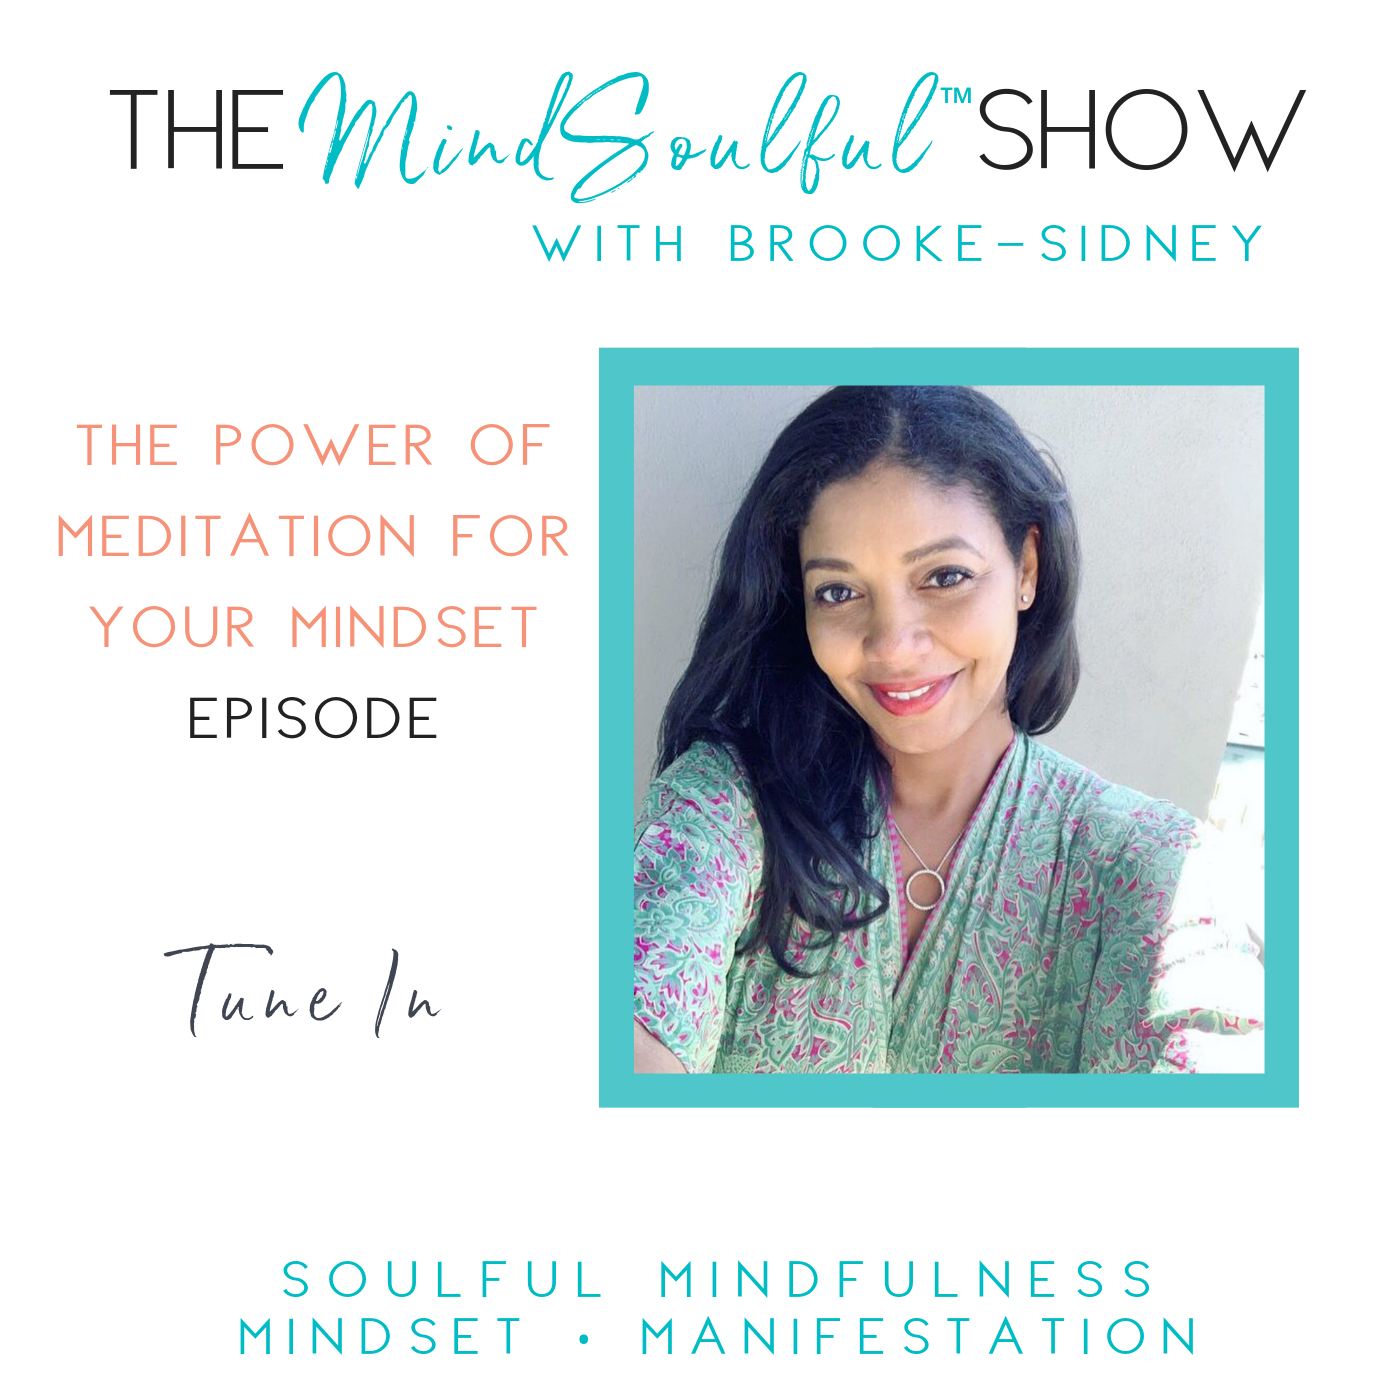 The MindSoulful Show - THE POWER OF MEDITATION FOR YOUR MINDSET EPISODE.png